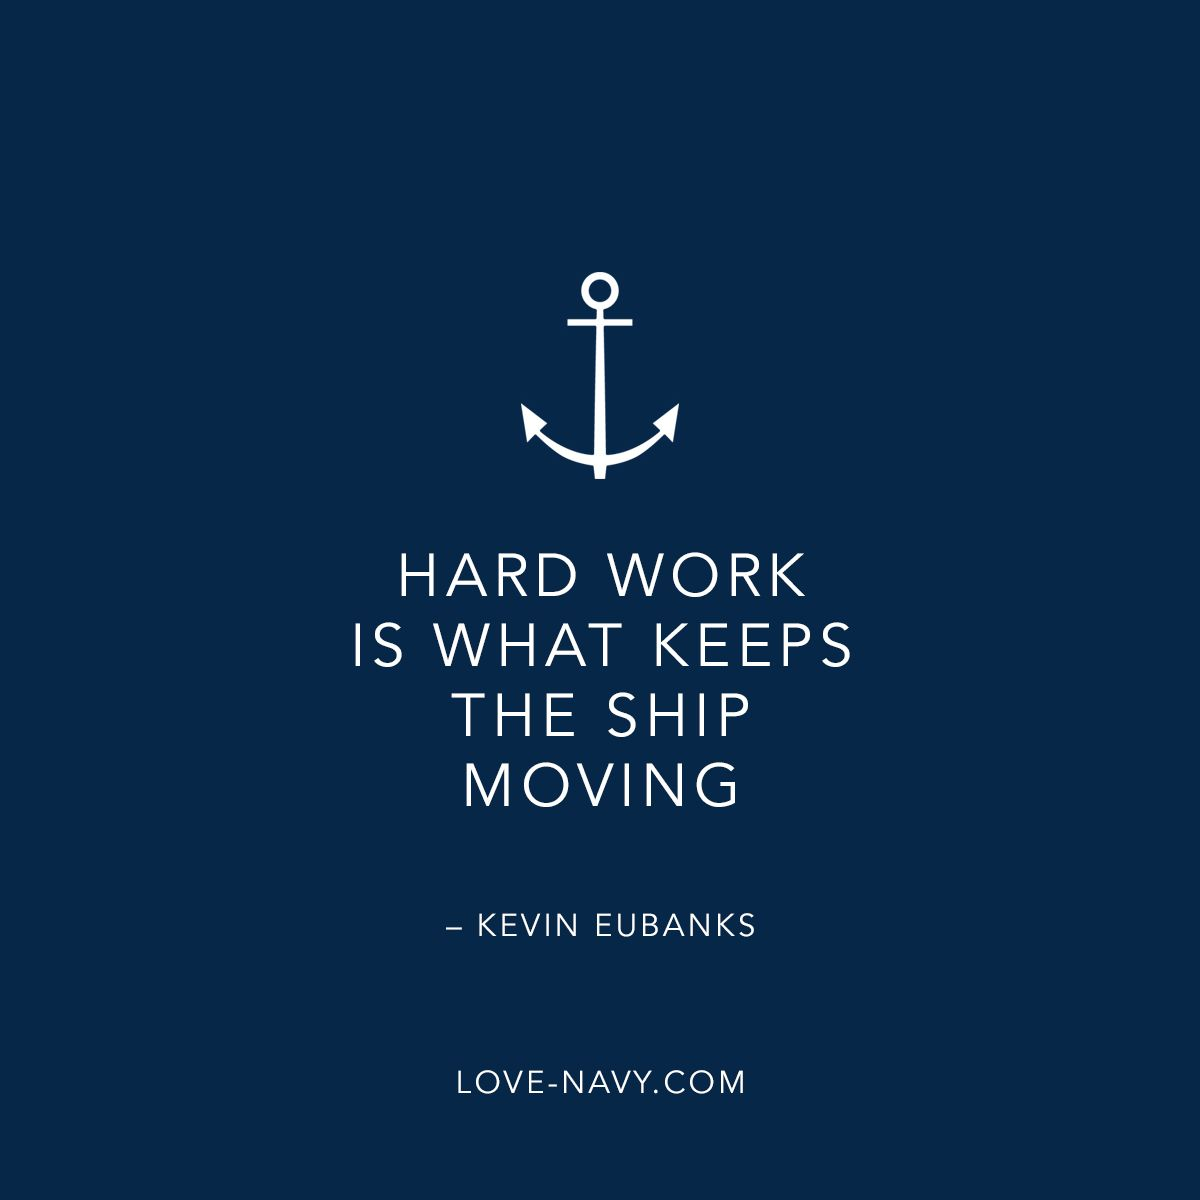 hardwork LOVE-NAVY.COM  Motivational quotes, Nautical quotes